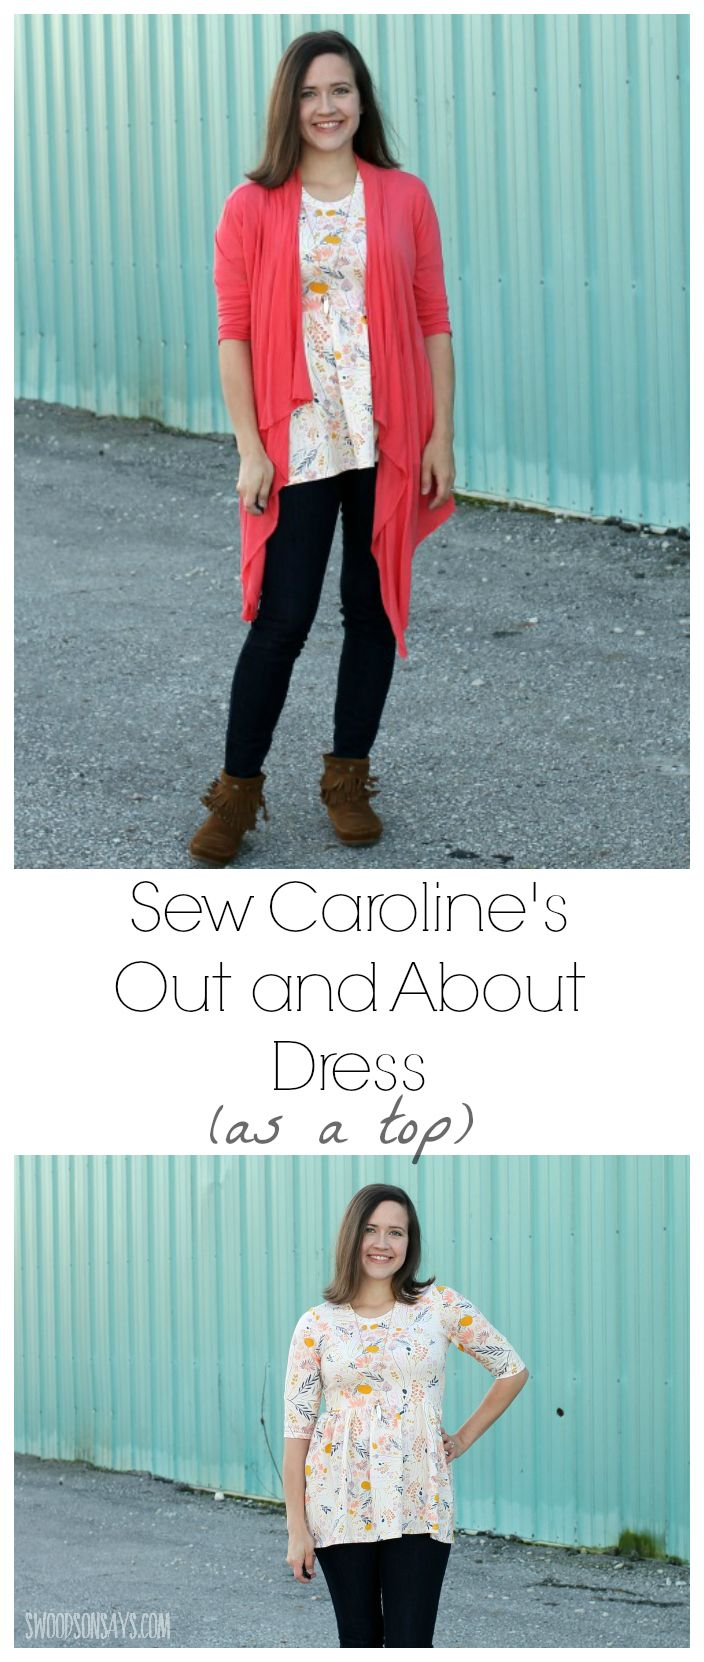 Sew Caroline's Out and About Dress – As A Top